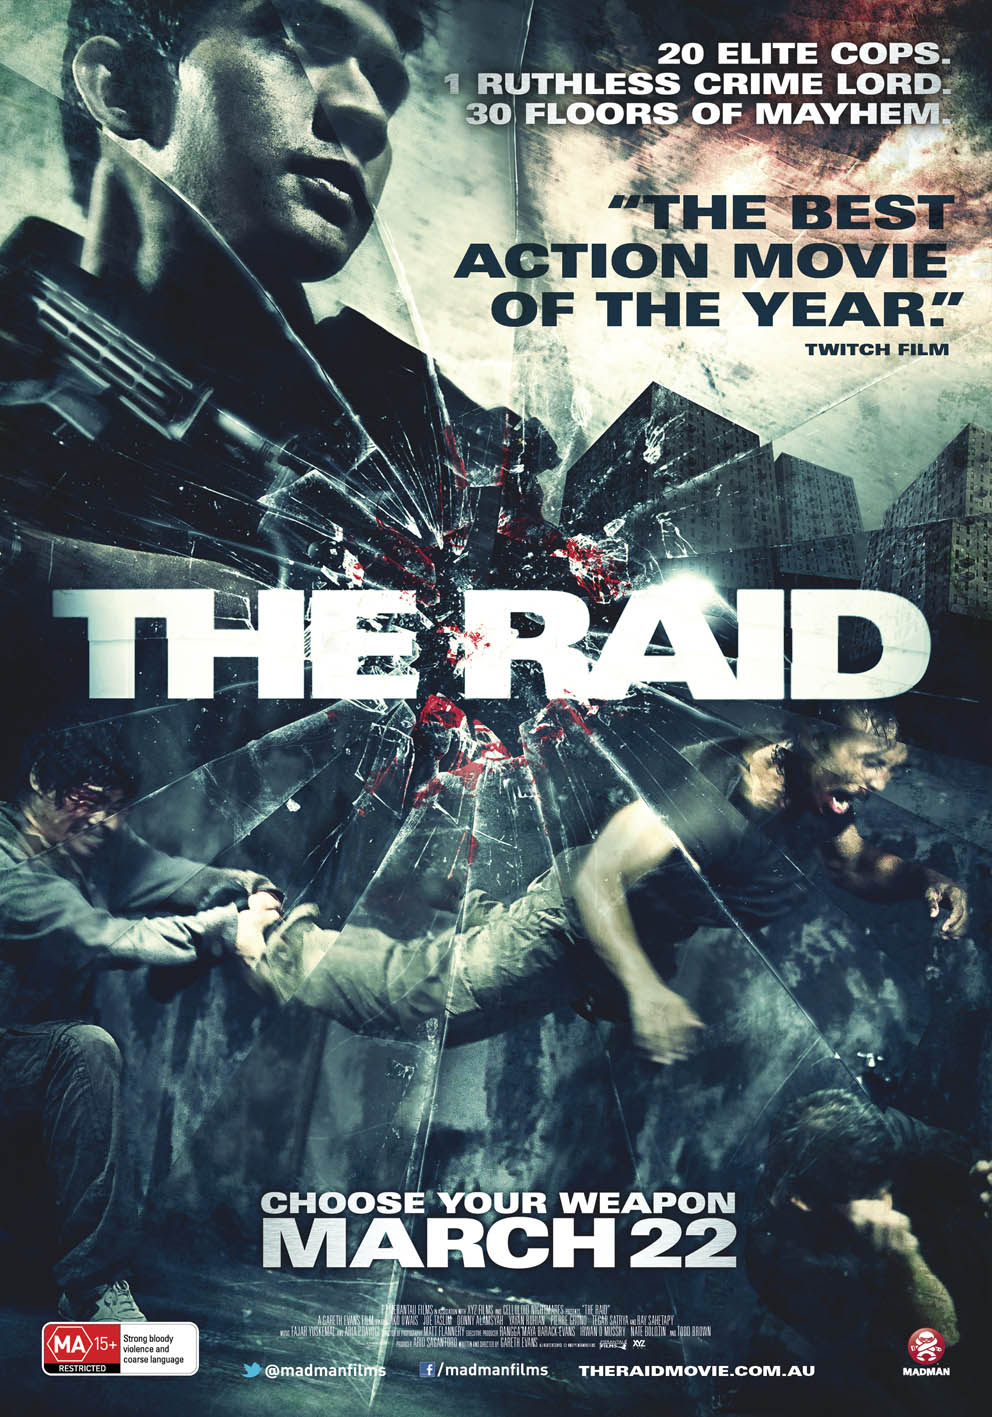 [MULTI] The Raid (2012) [TRUEFRENCH] (AC3) [BRRip]